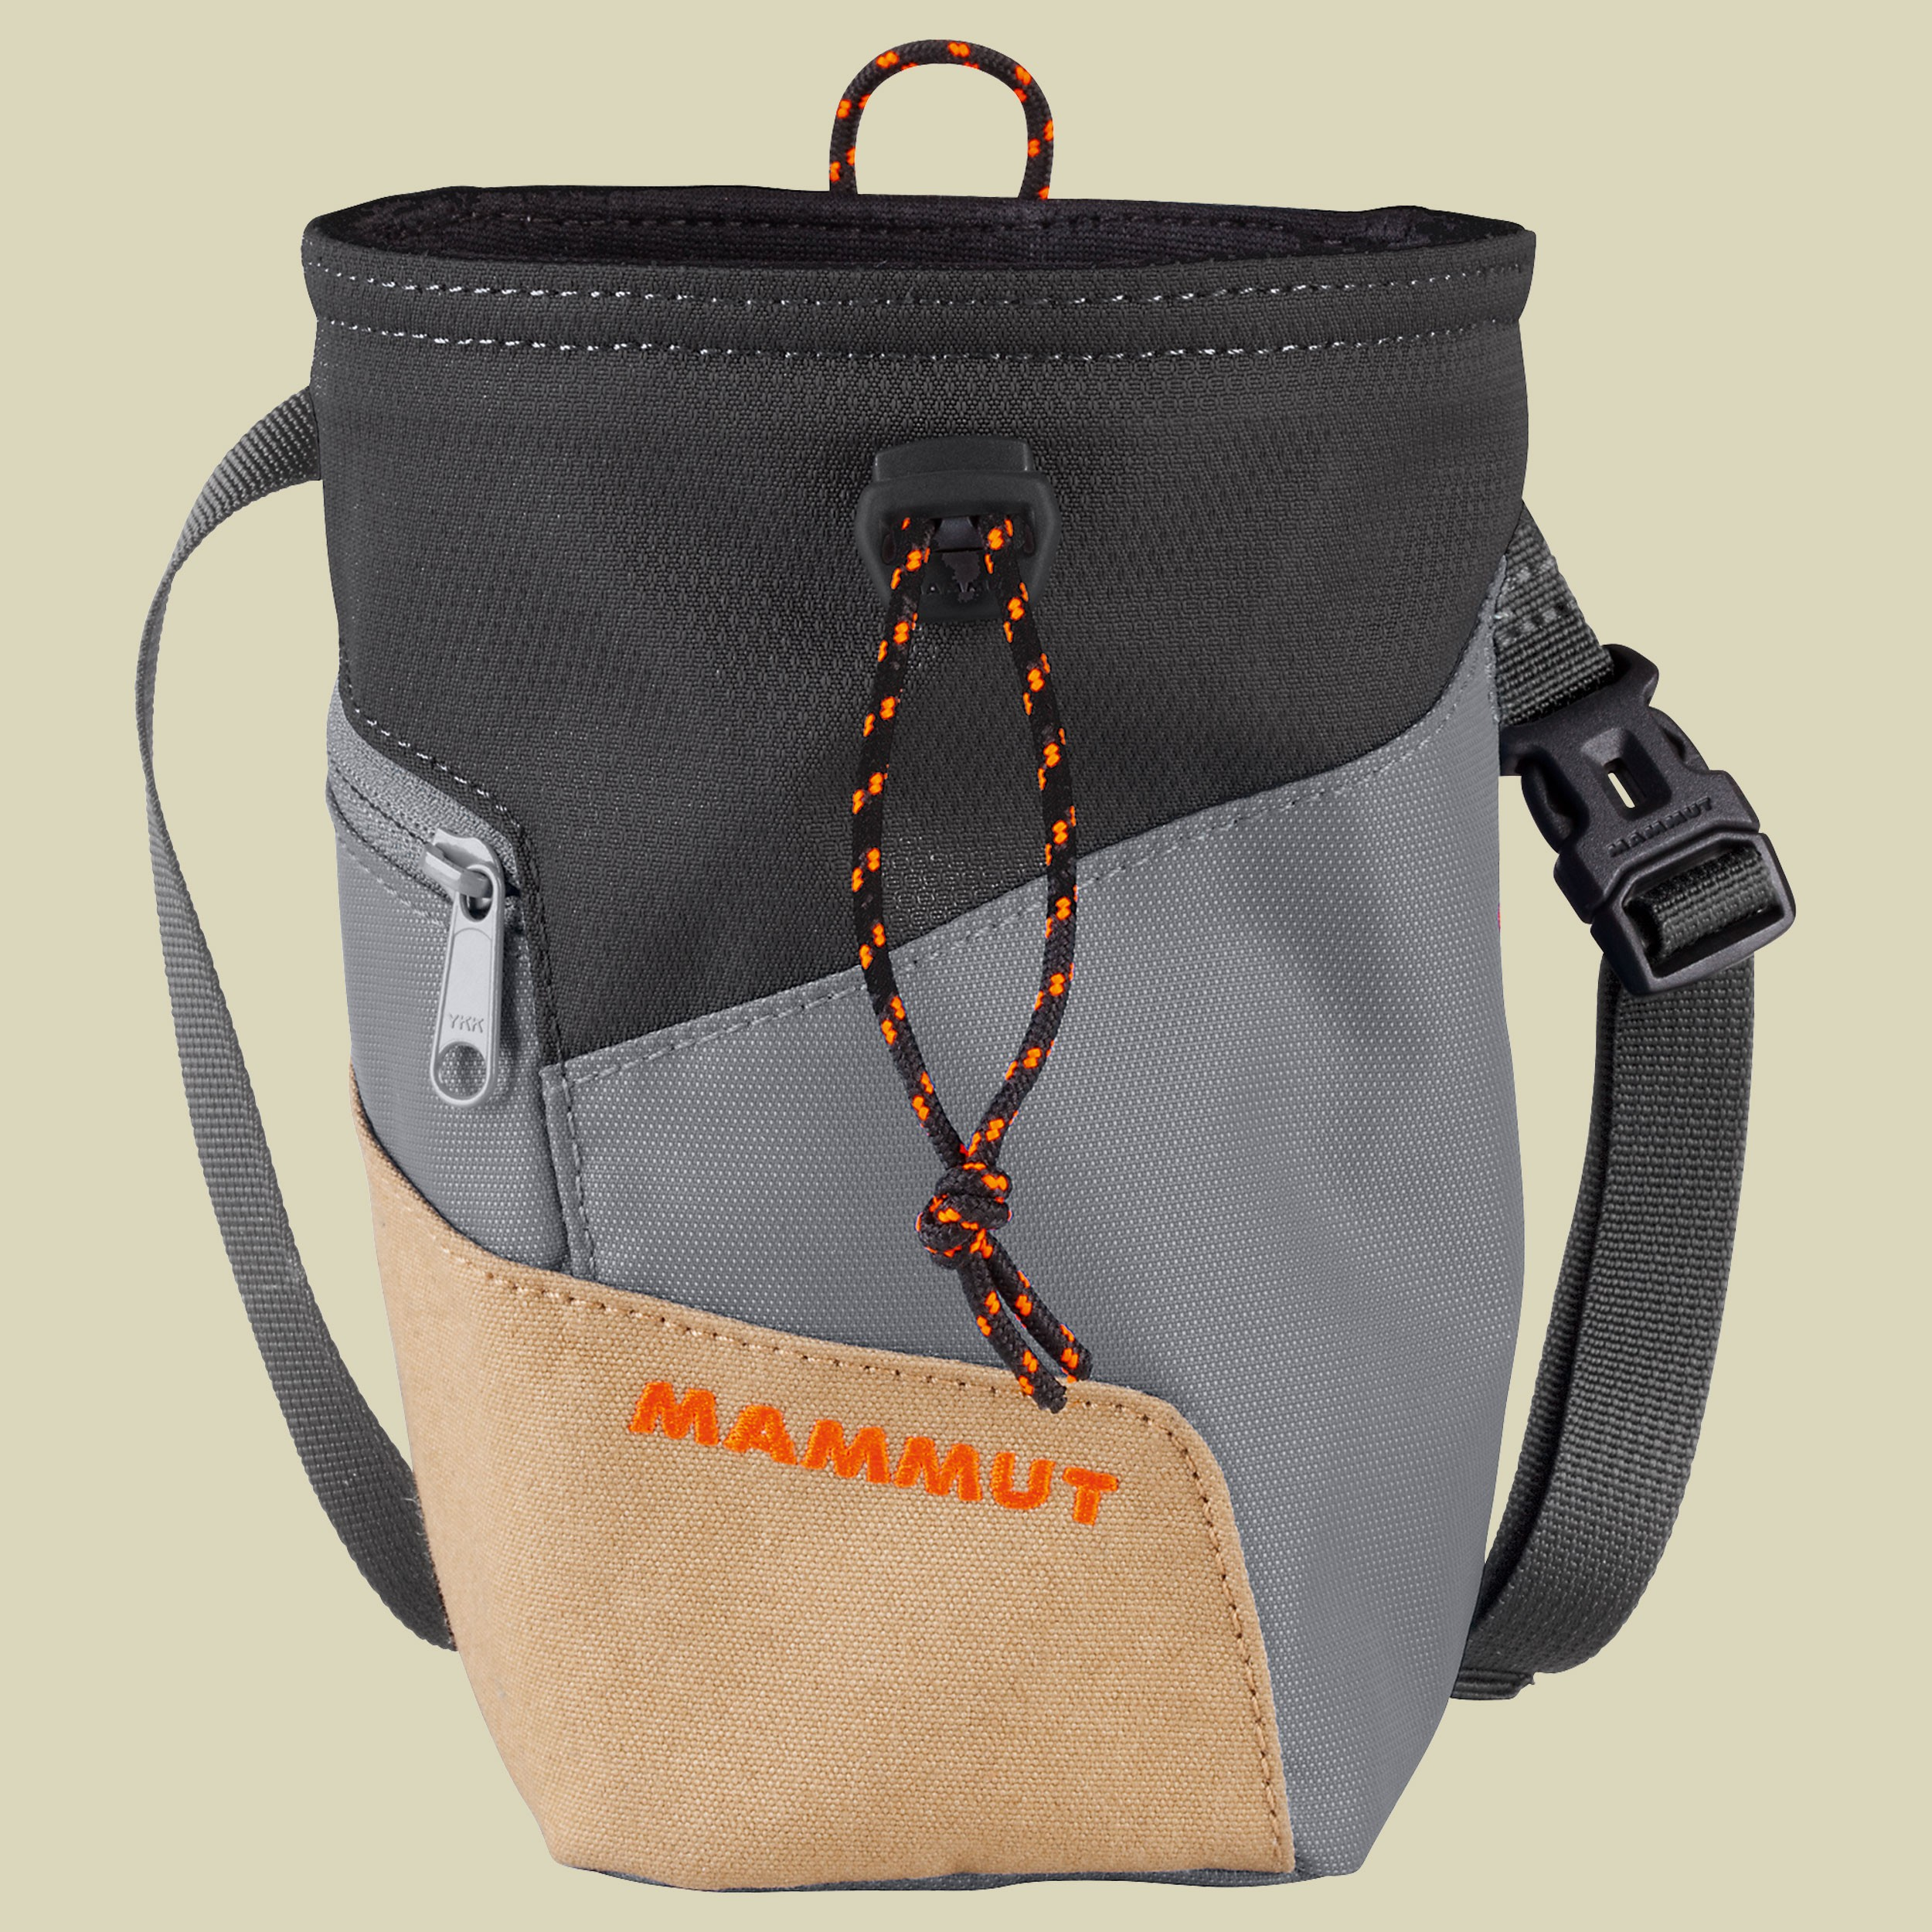 mammut_2290_00780_7047_rough_rider_chalk_bag_sand_fallback